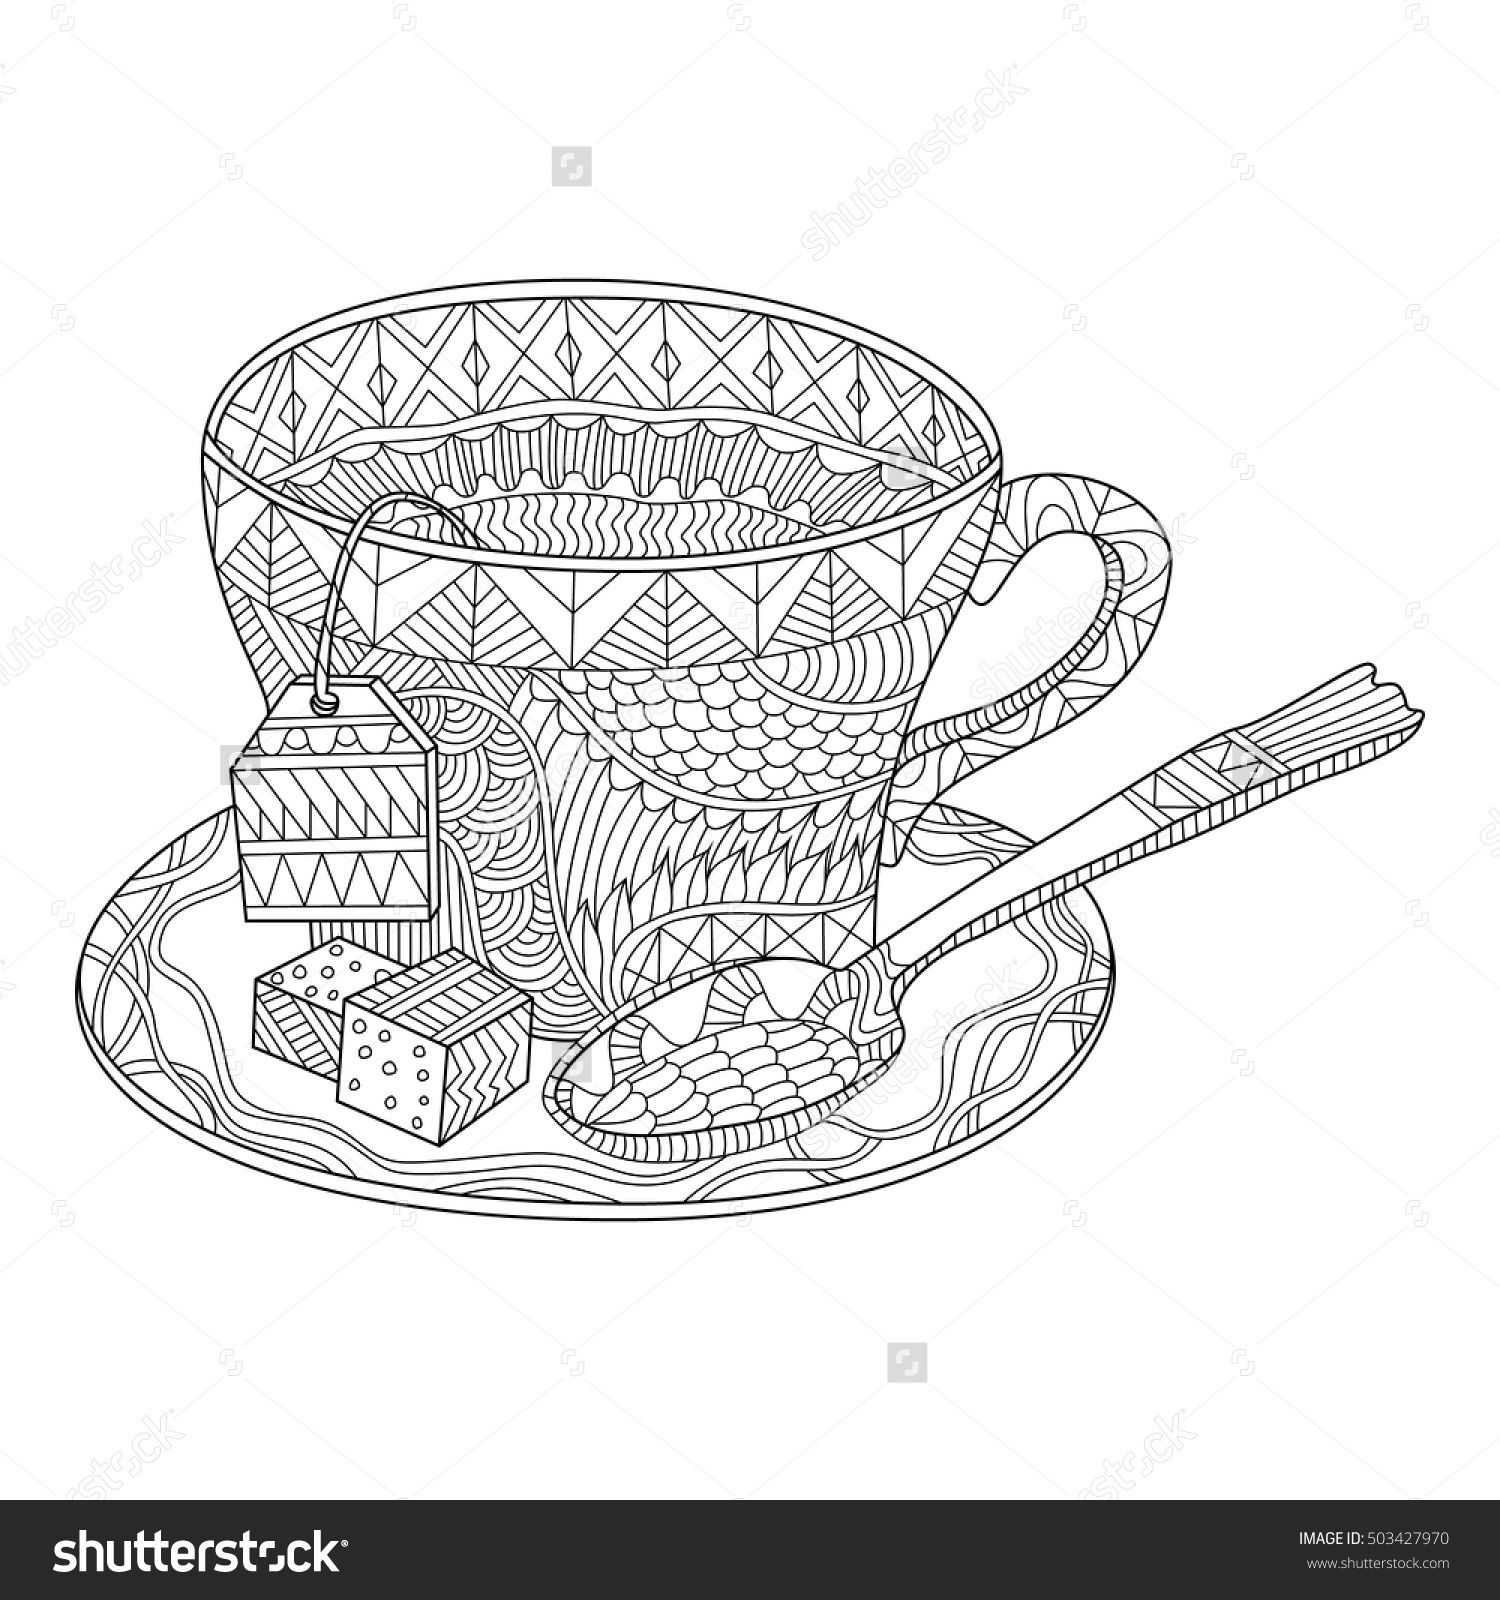 Tea Cup Vector Illustration Coloring Page Coloring Pages Tea Cups Vector Illustration